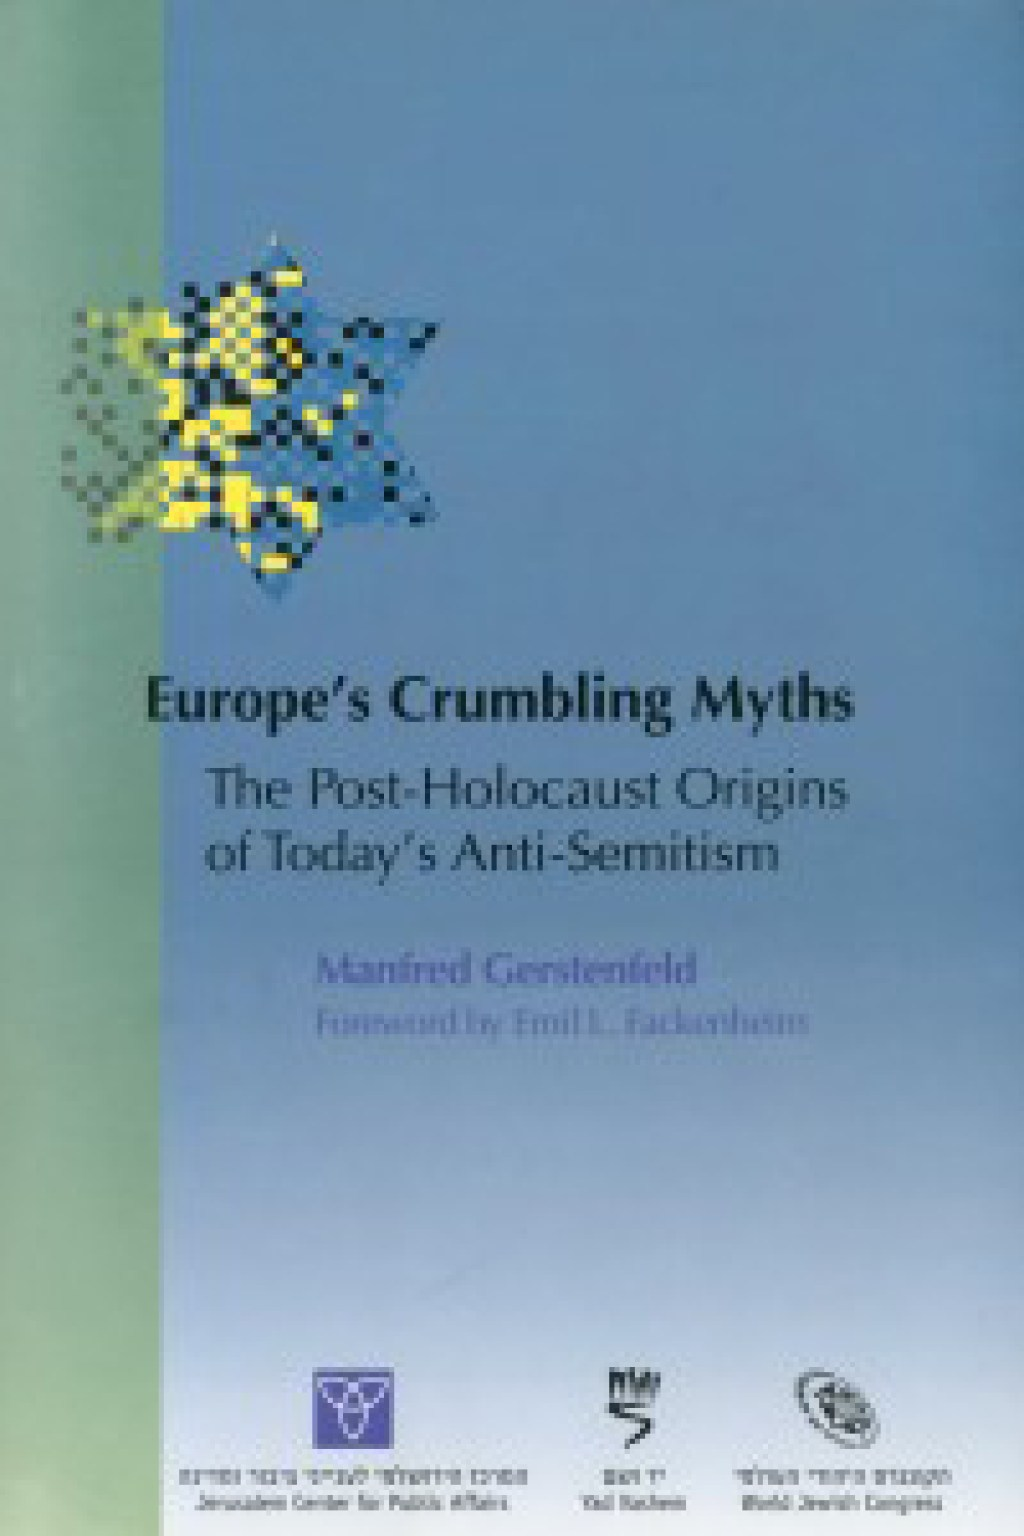 Europe's Crumbling Myths – The Post-Holocaust Origins of Today's Anti-Semitism